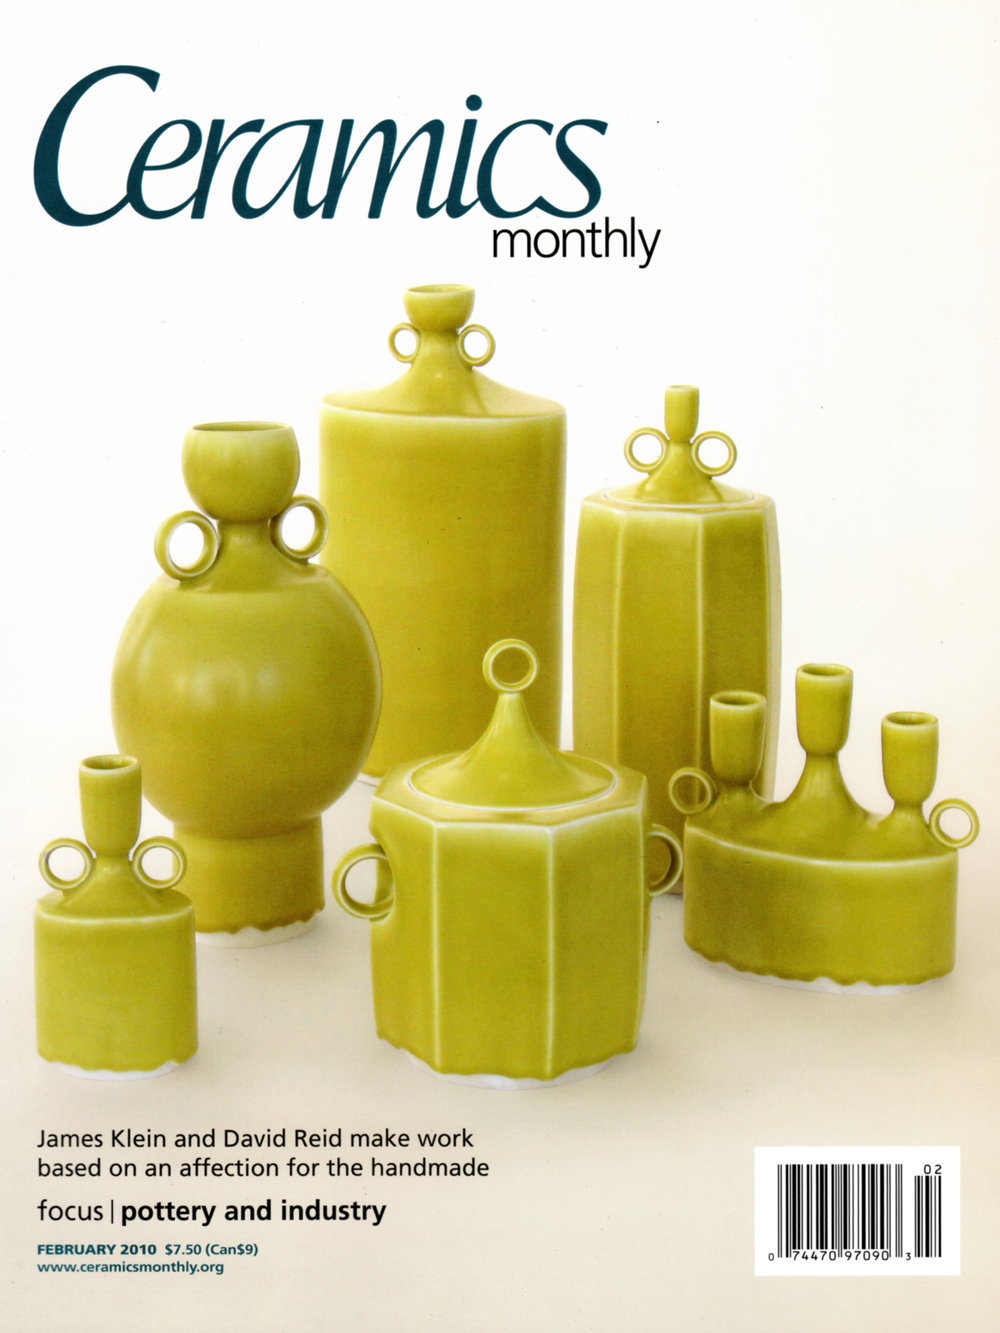 imai_ceramics_monthly_feb2010_cover.jpg